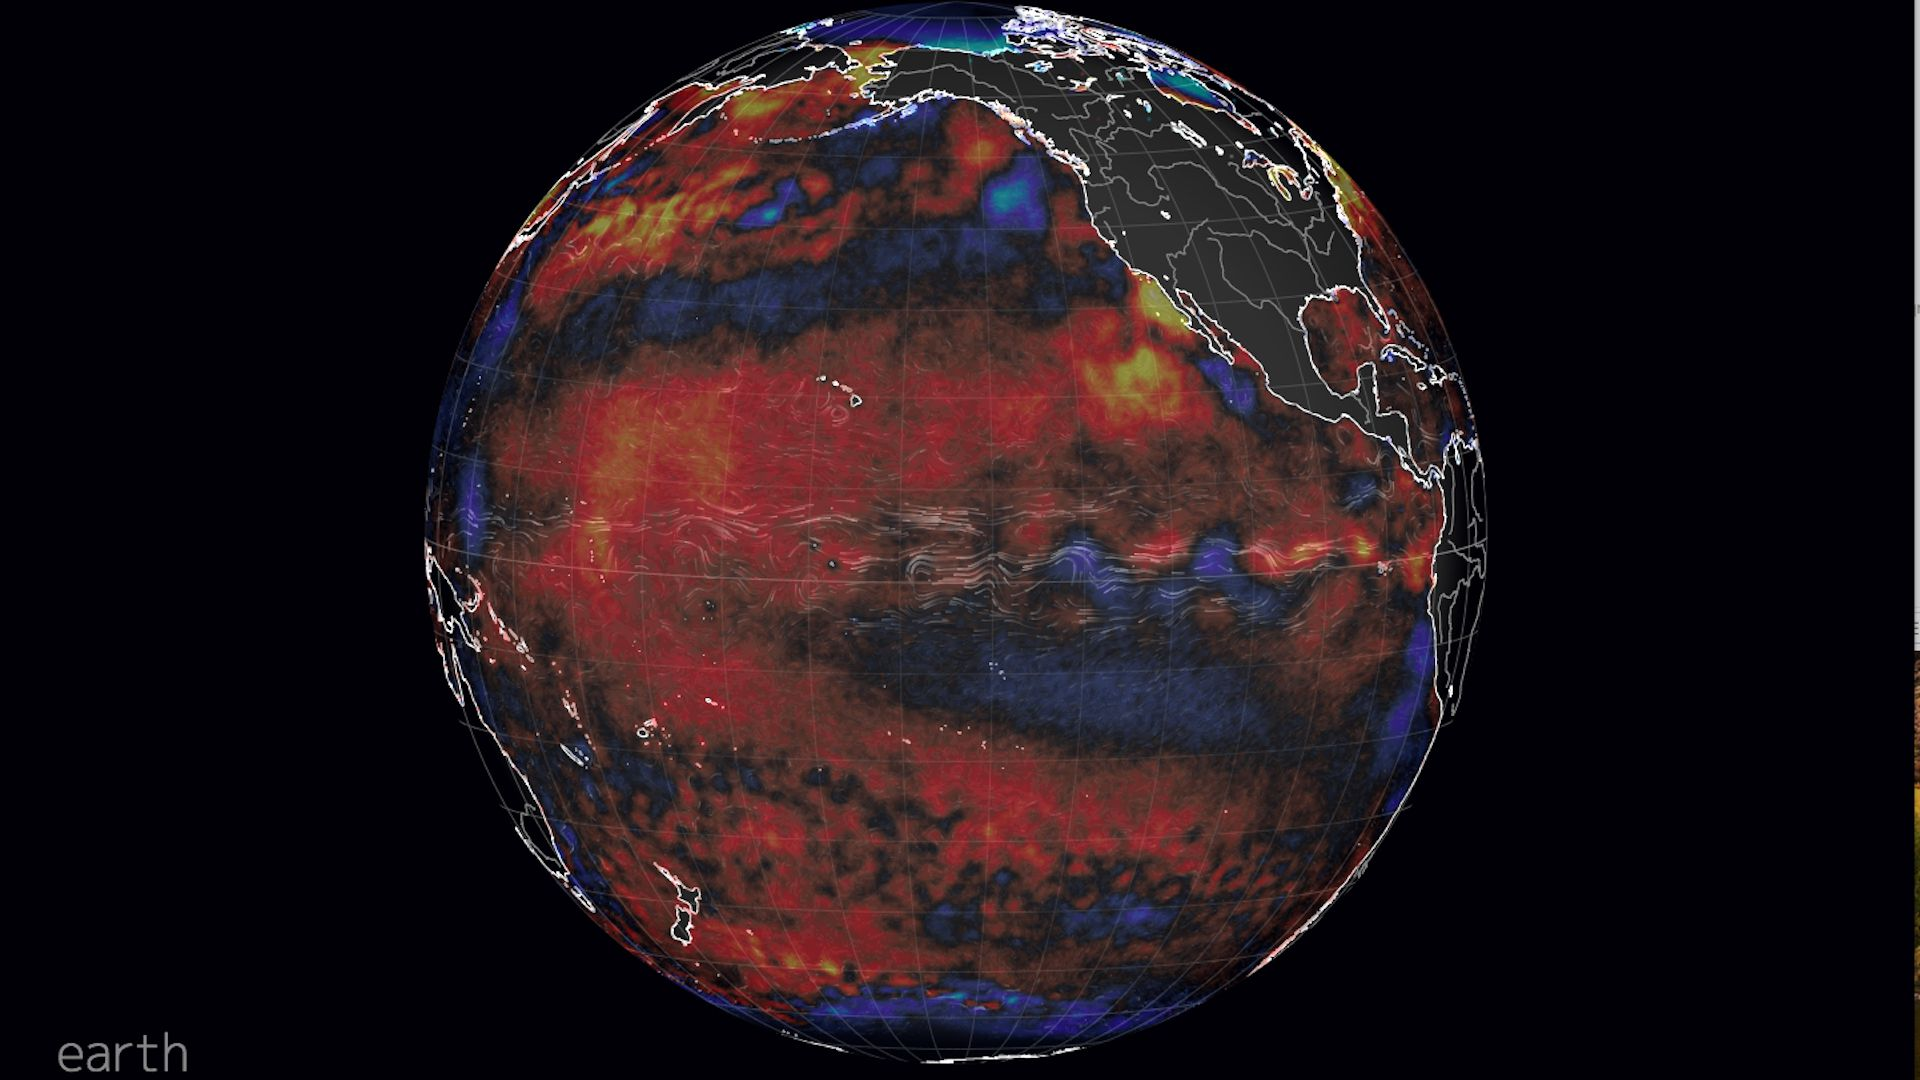 Global sea surface temperature anomalies, showing warming near the equator in the Pacific Ocean.